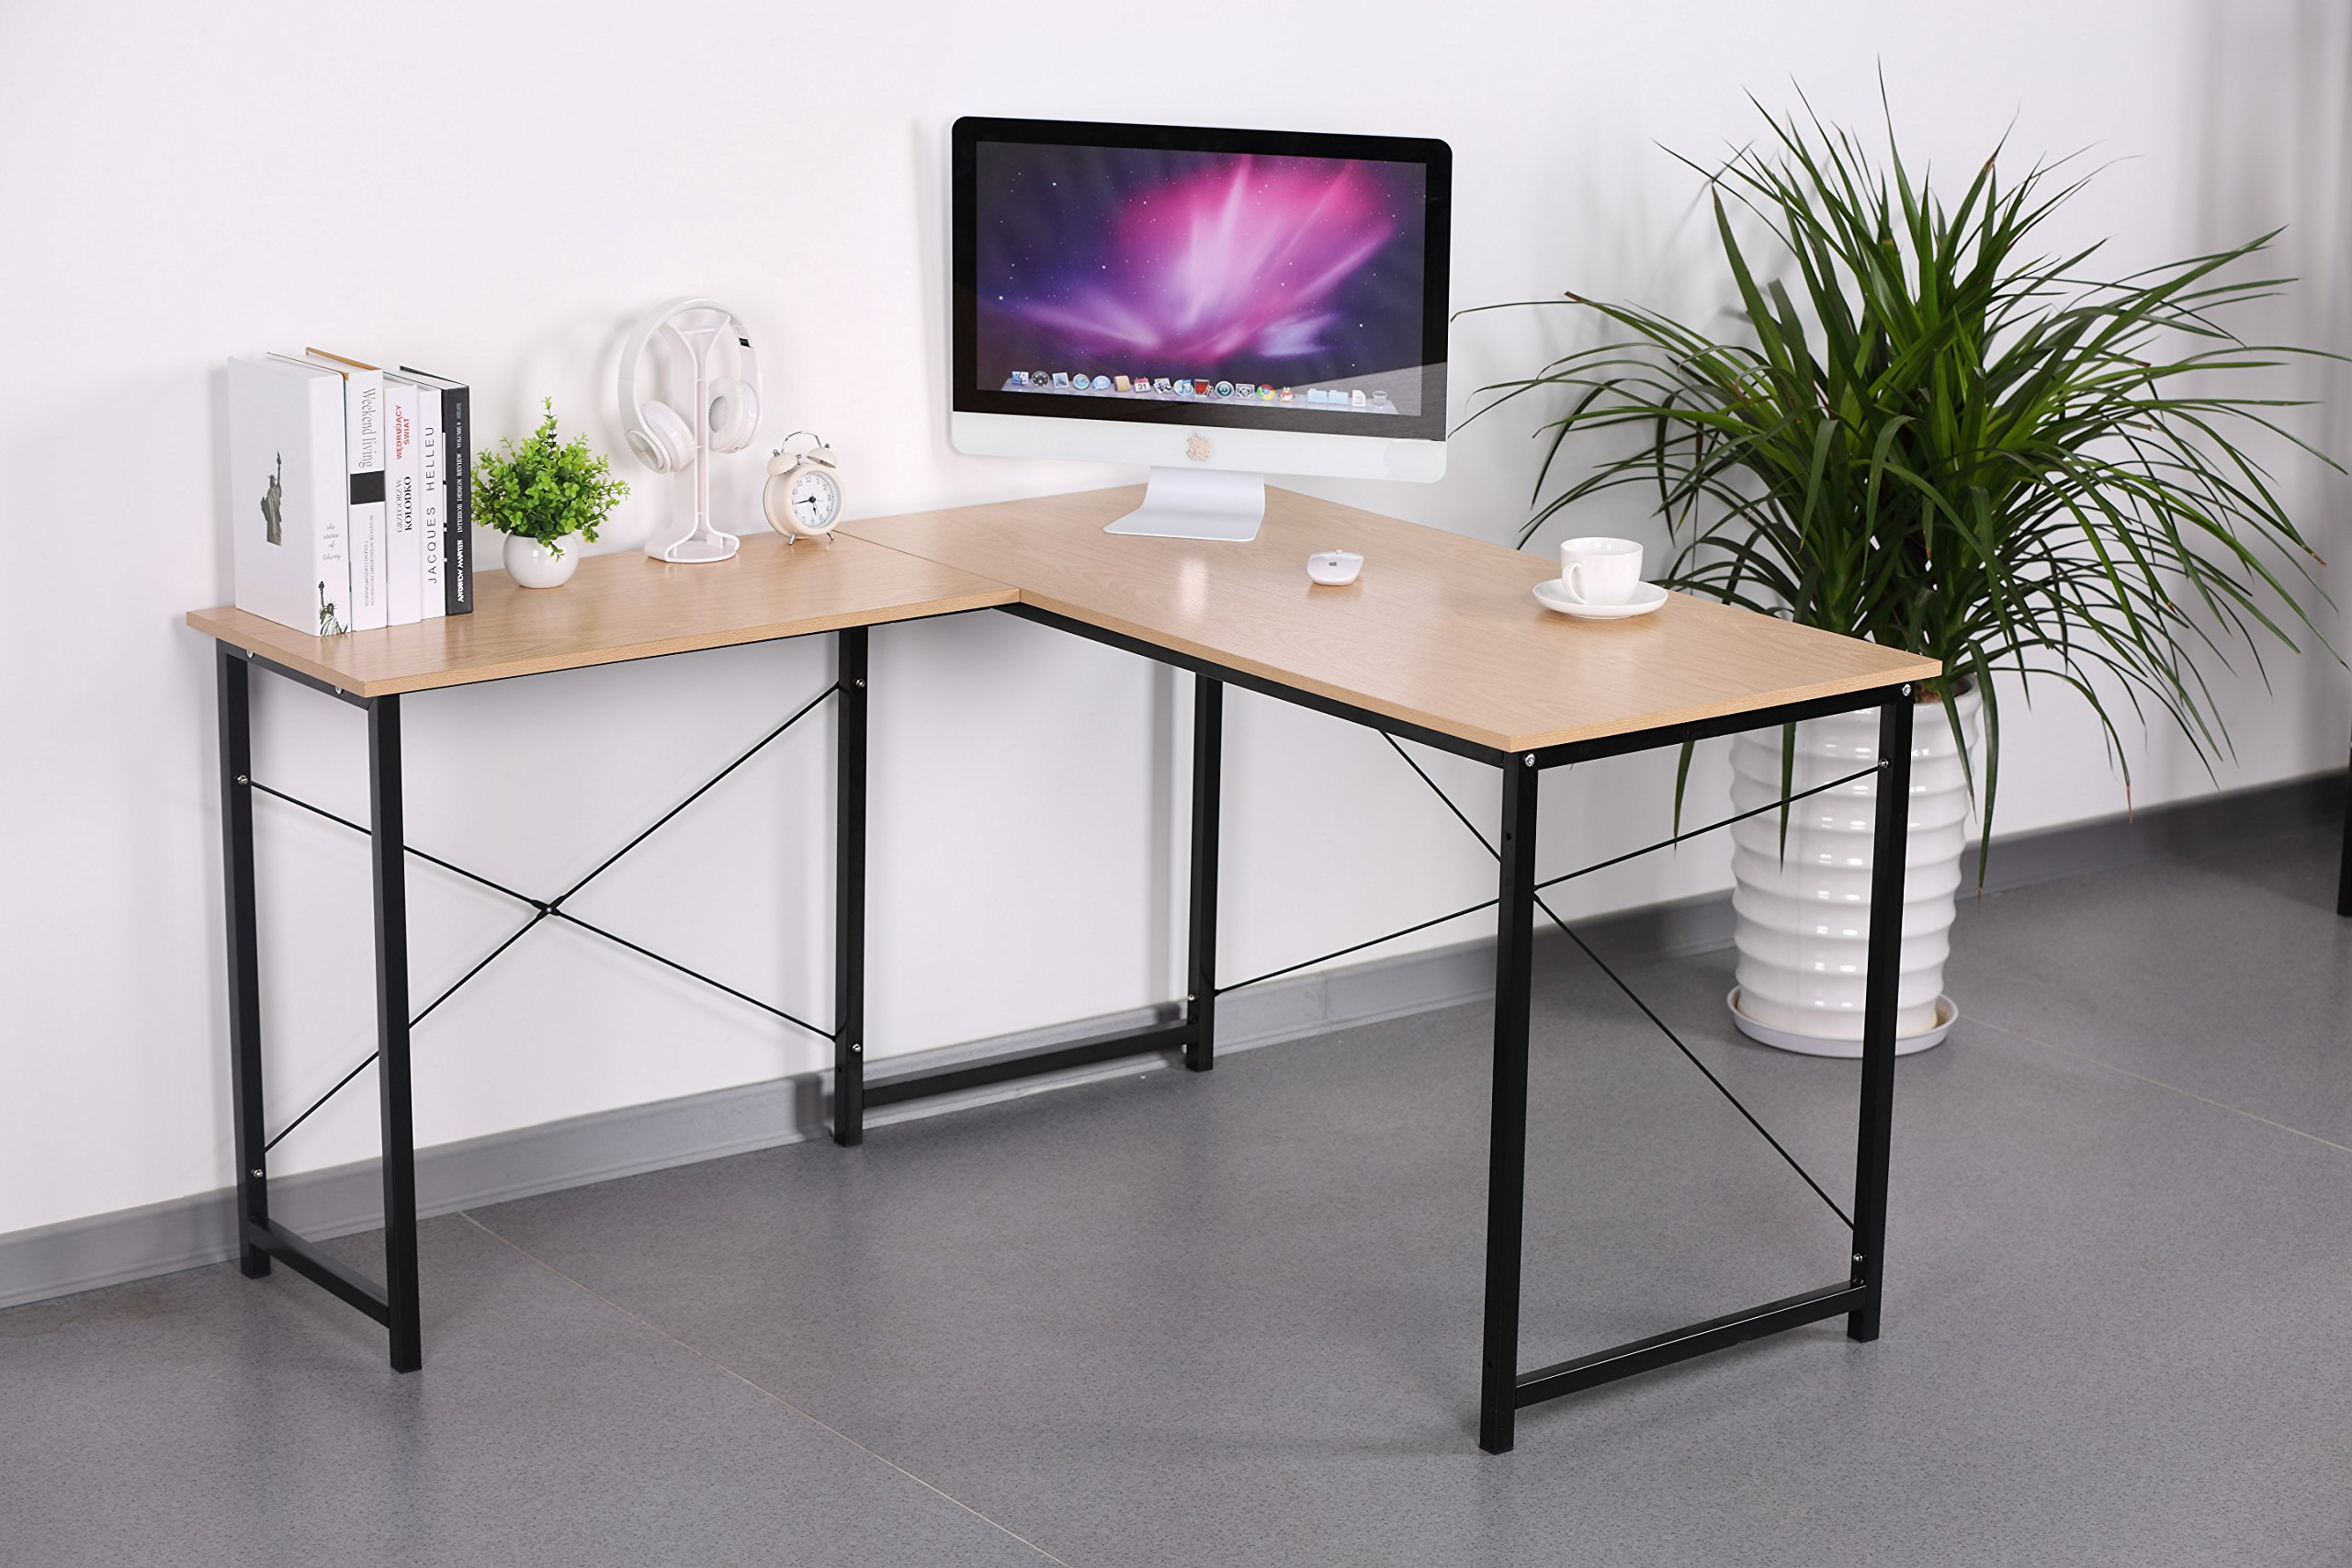 Sonoma Oak Wood Finish Black Metal L-Shape Corner Computer Desk PC Laptop Table Workstation Home Office